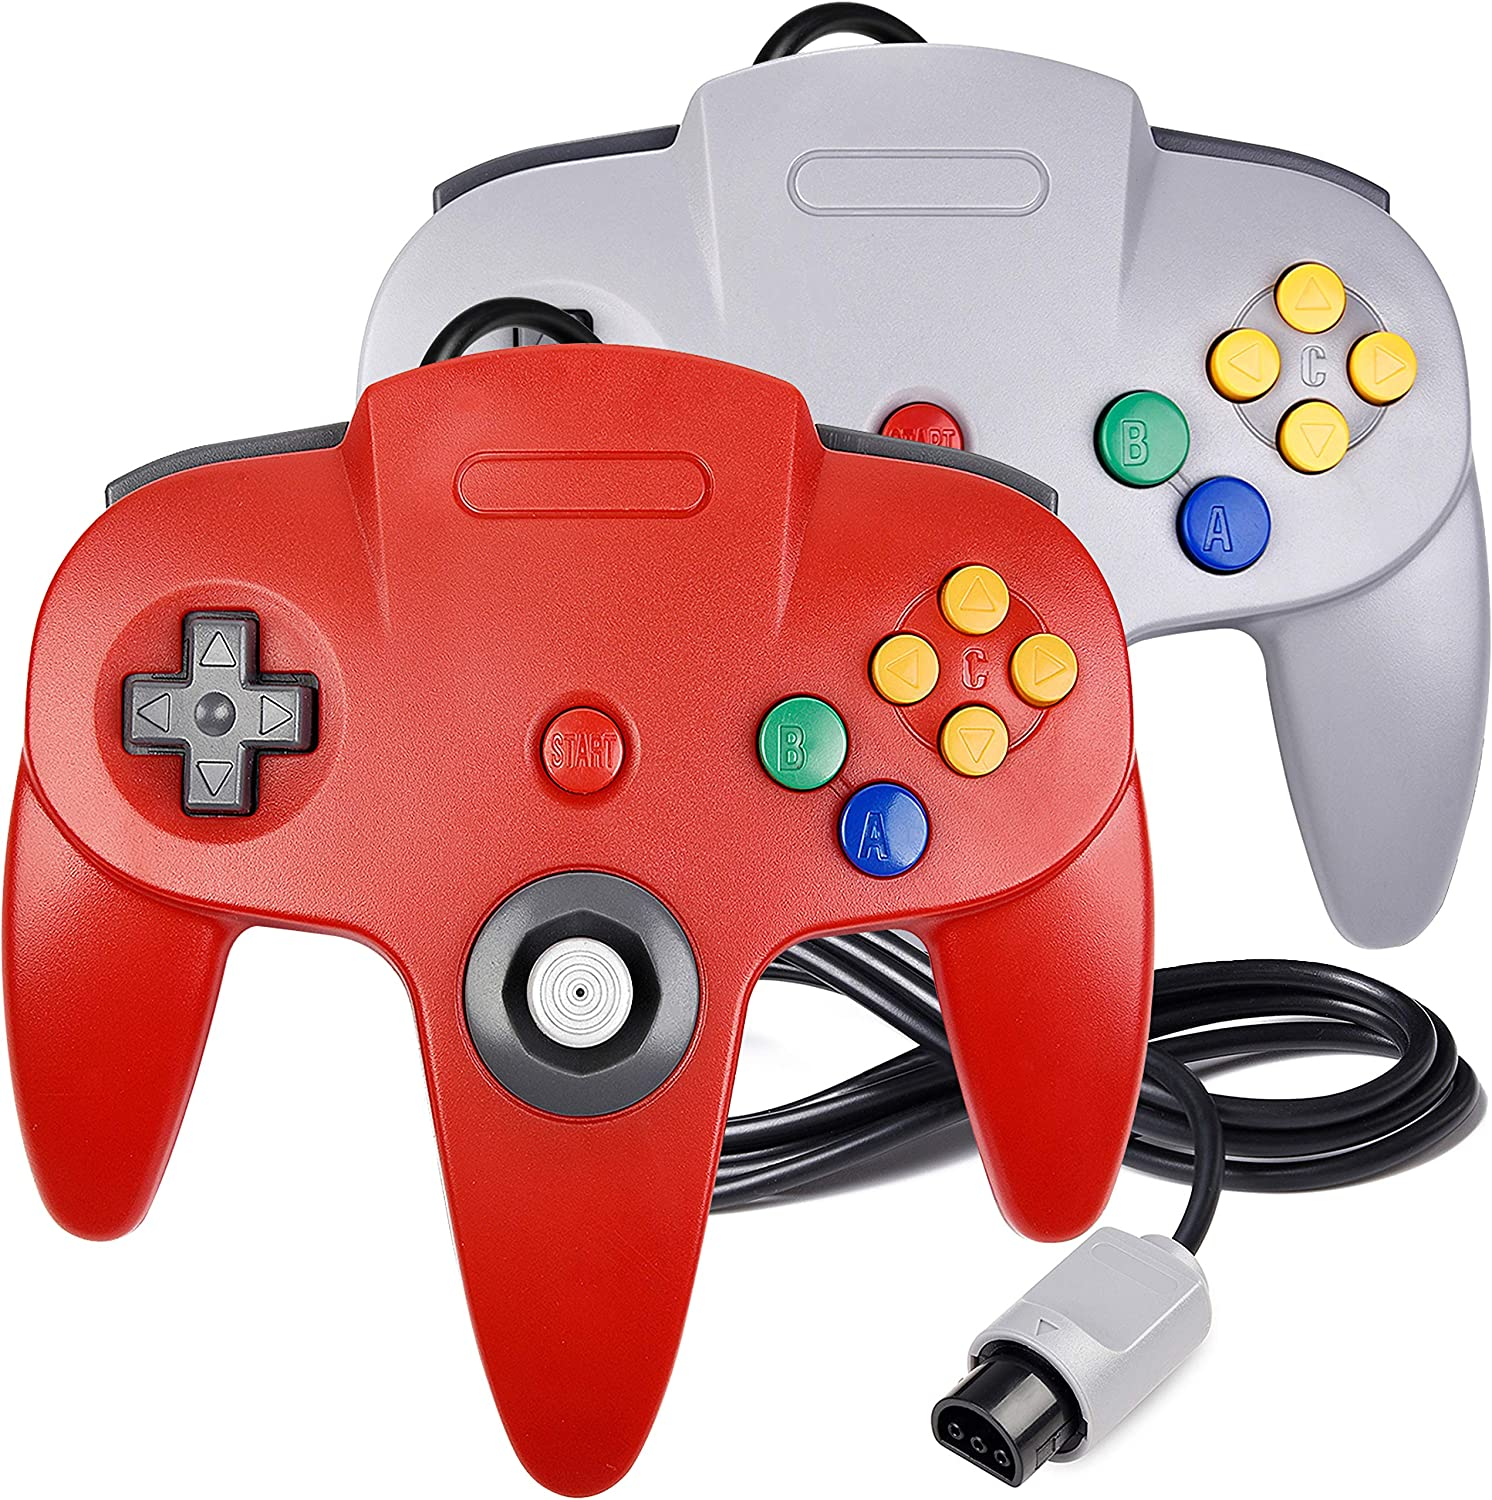 2 Pack N64 Controller, iNNEXT Classic Wired N64 64-bit Gamepad Joystick for Ultra 64 Video Game Console (Red/Grey)